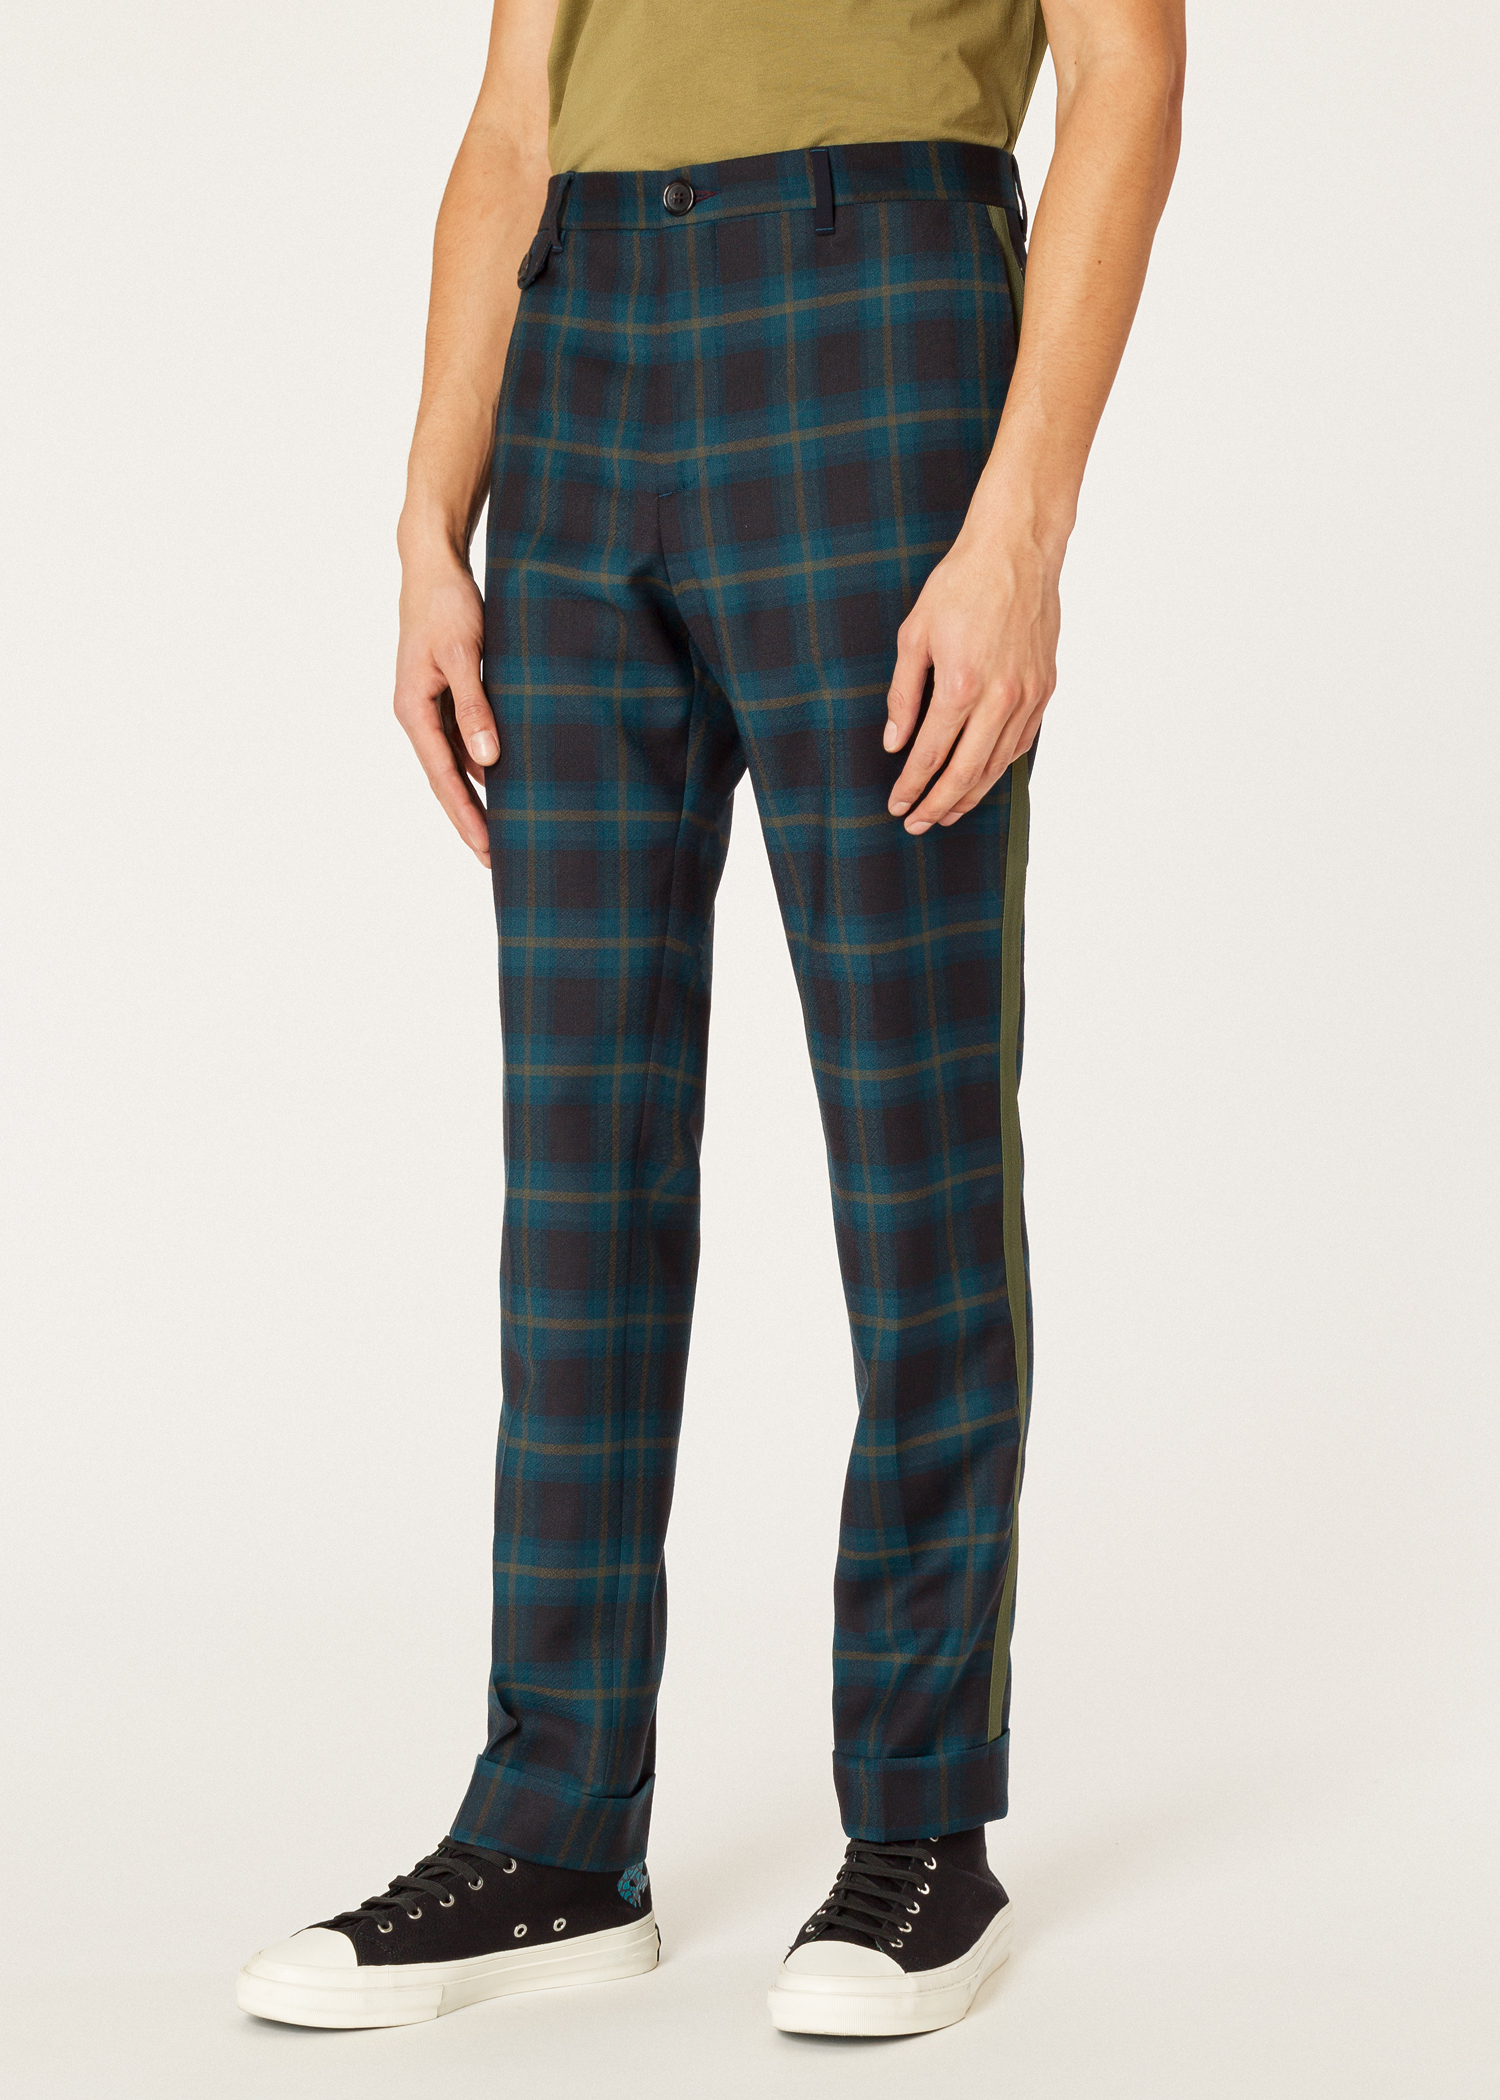 25c958156aa Model front close up - Men's Slim-Fit Teal Check Wool Pants With Khaki  Stripe